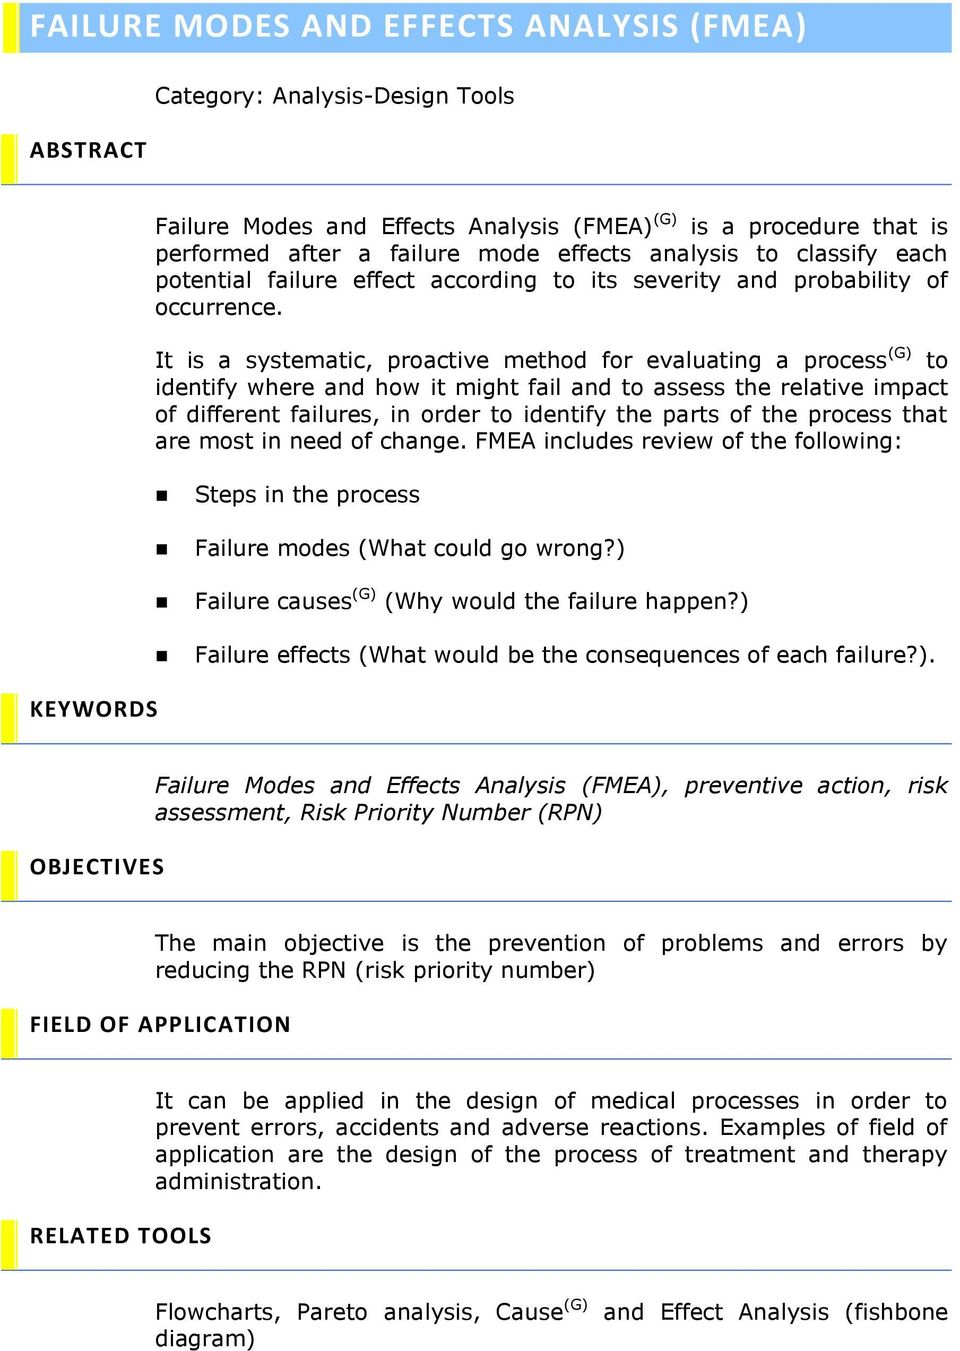 Process Failure Mode & Effects Analysis